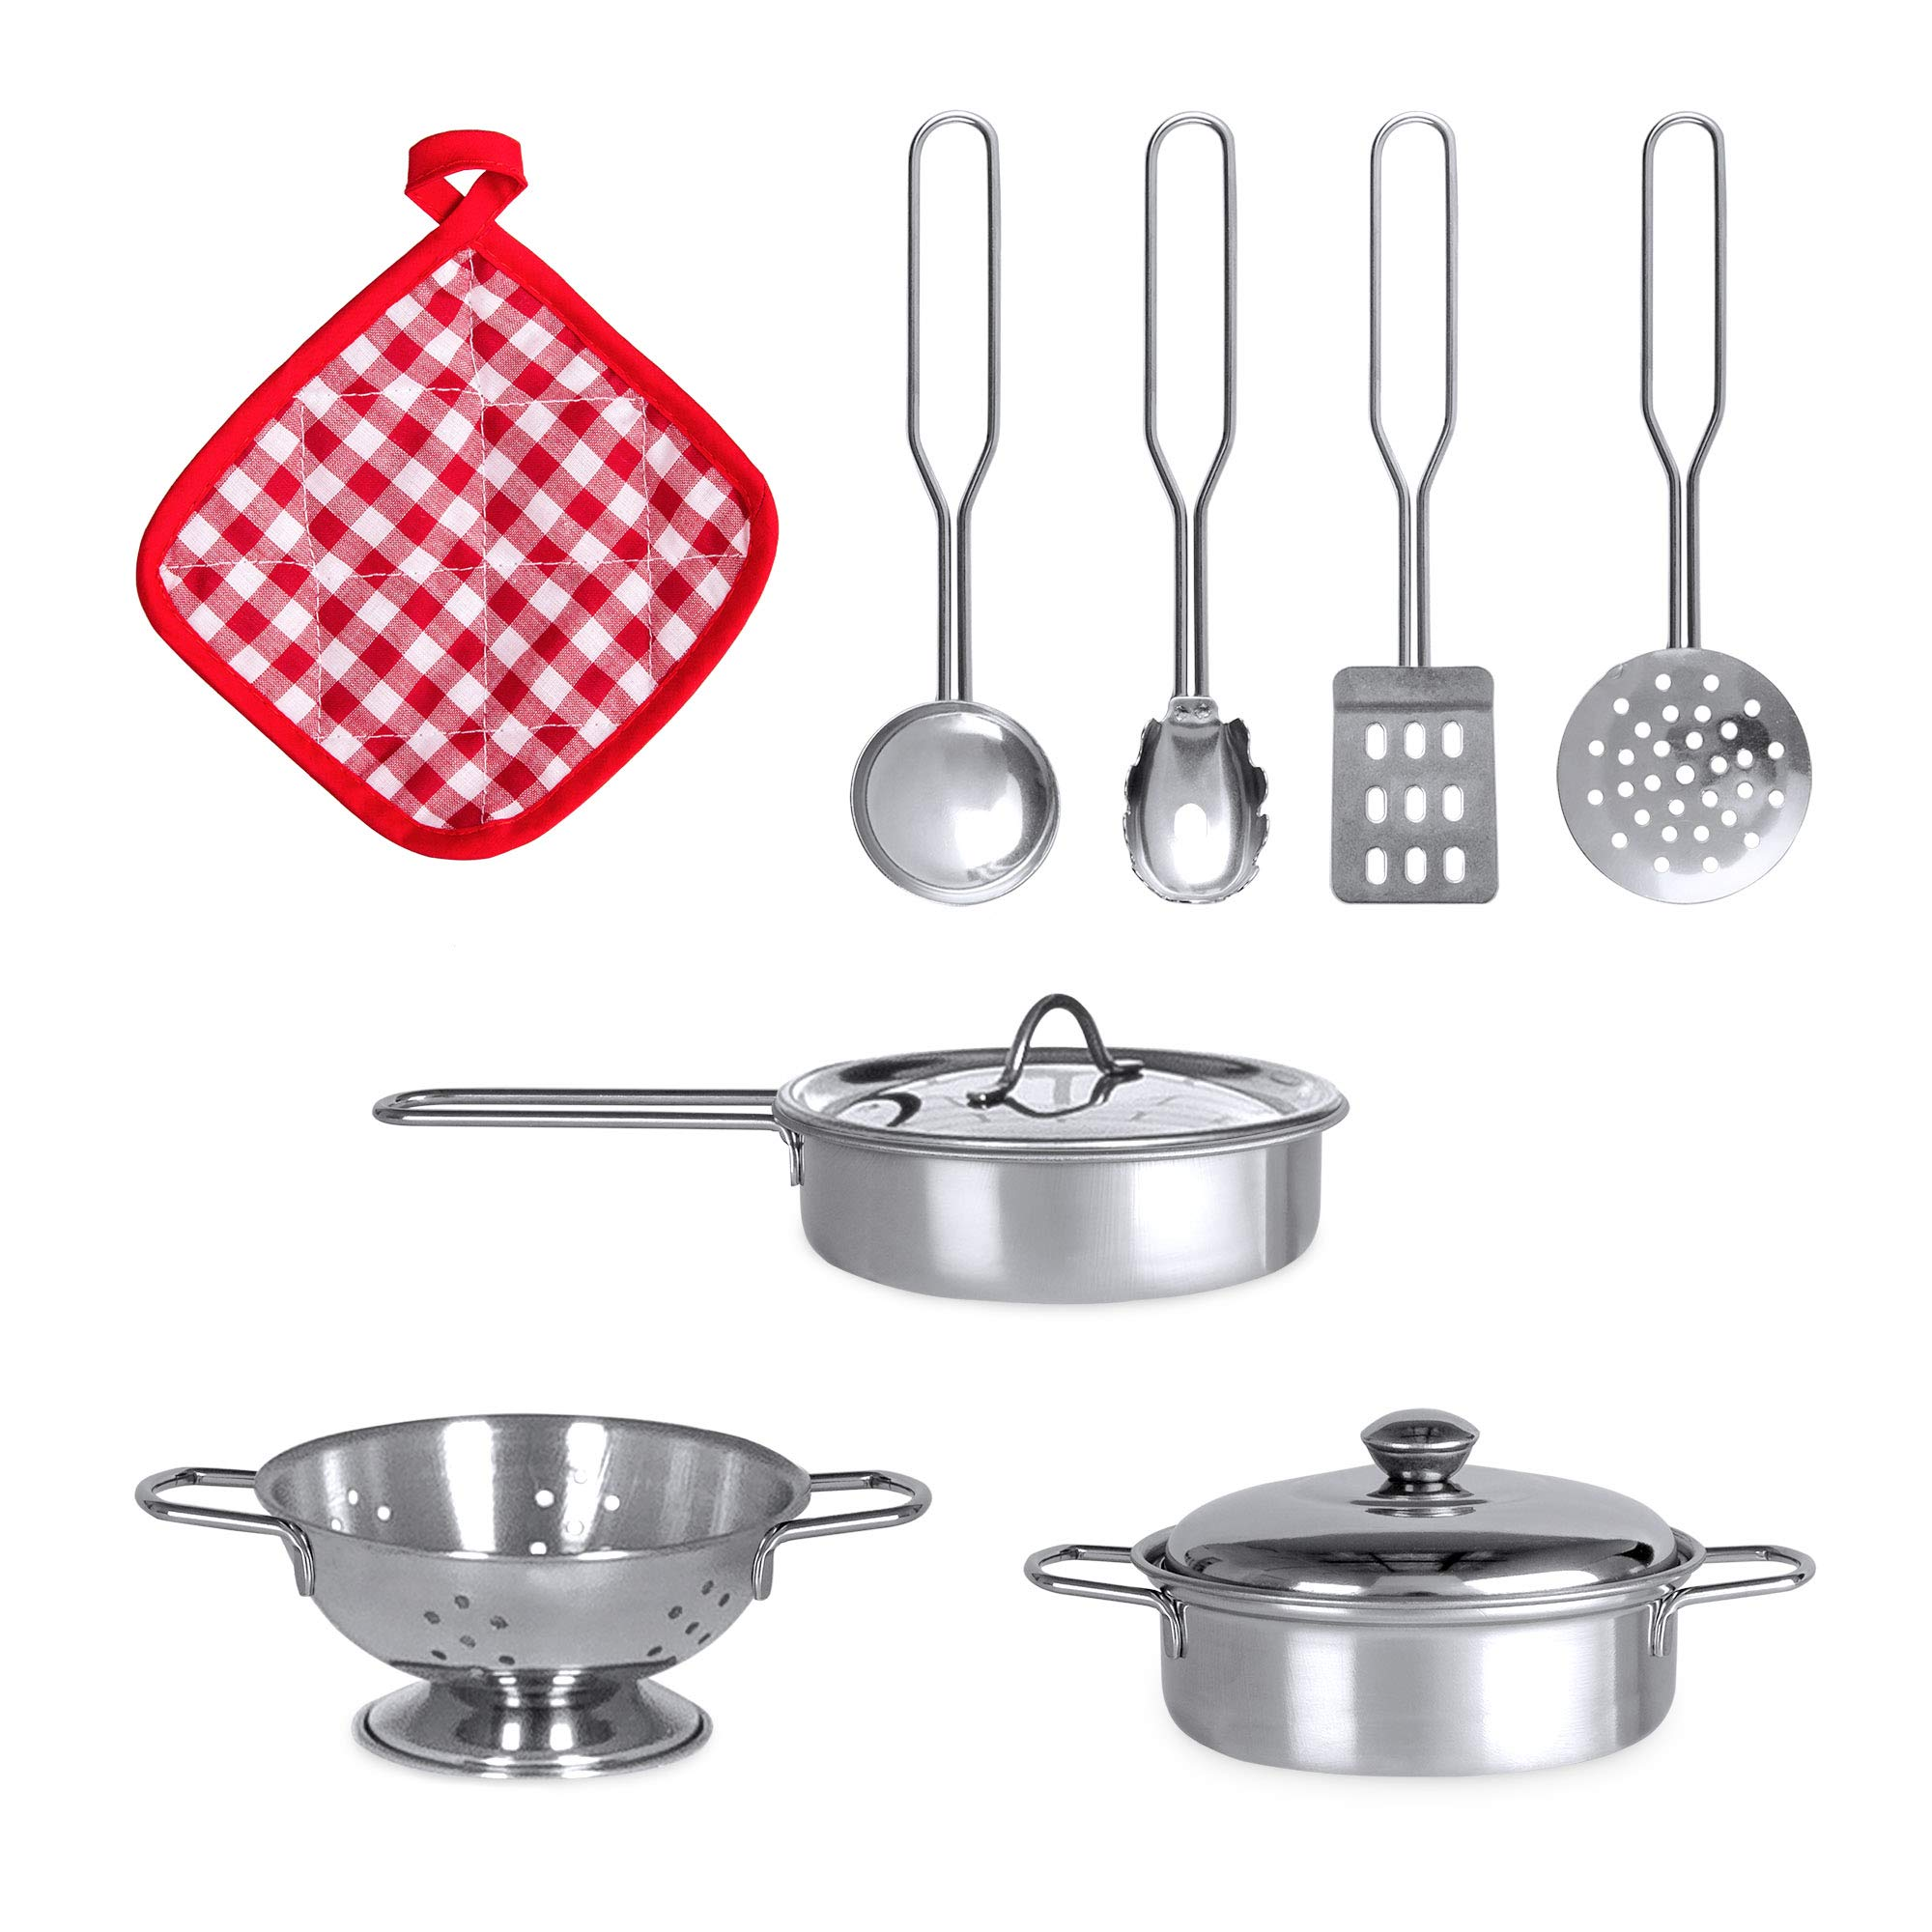 Best Choice Products Play Kitchen Set with 4 Utensils, Sounds, Sink, Fridge, Stovetop by Best Choice Products (Image #5)